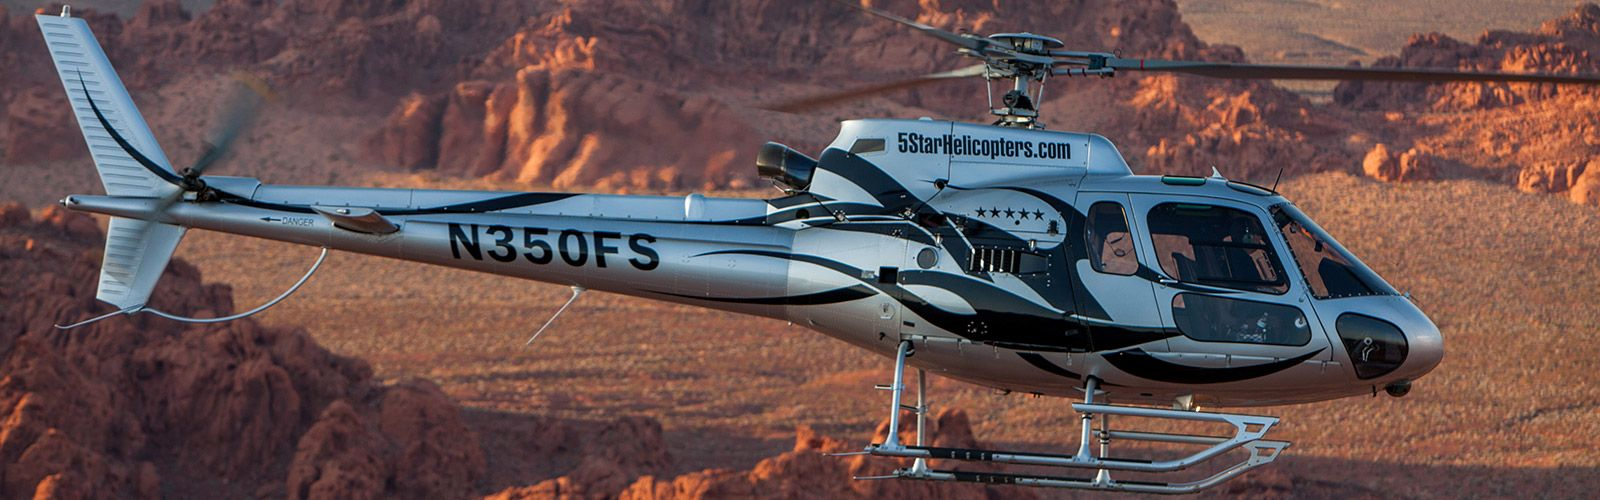 GRAND CANYON WEST RIM HELICOPTER EXTENDED AIR ONLY TOUR